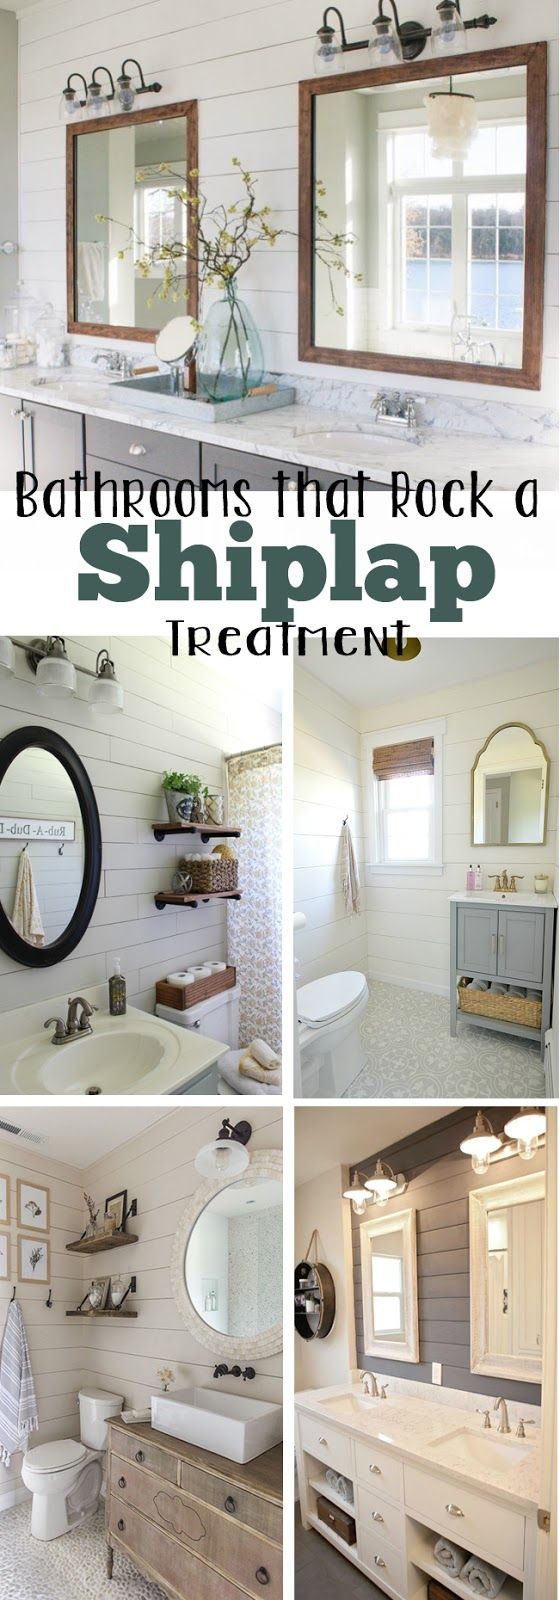 Bathroom wall decor quotes - 10 Bathrooms That Rock A Shiplap Treatment